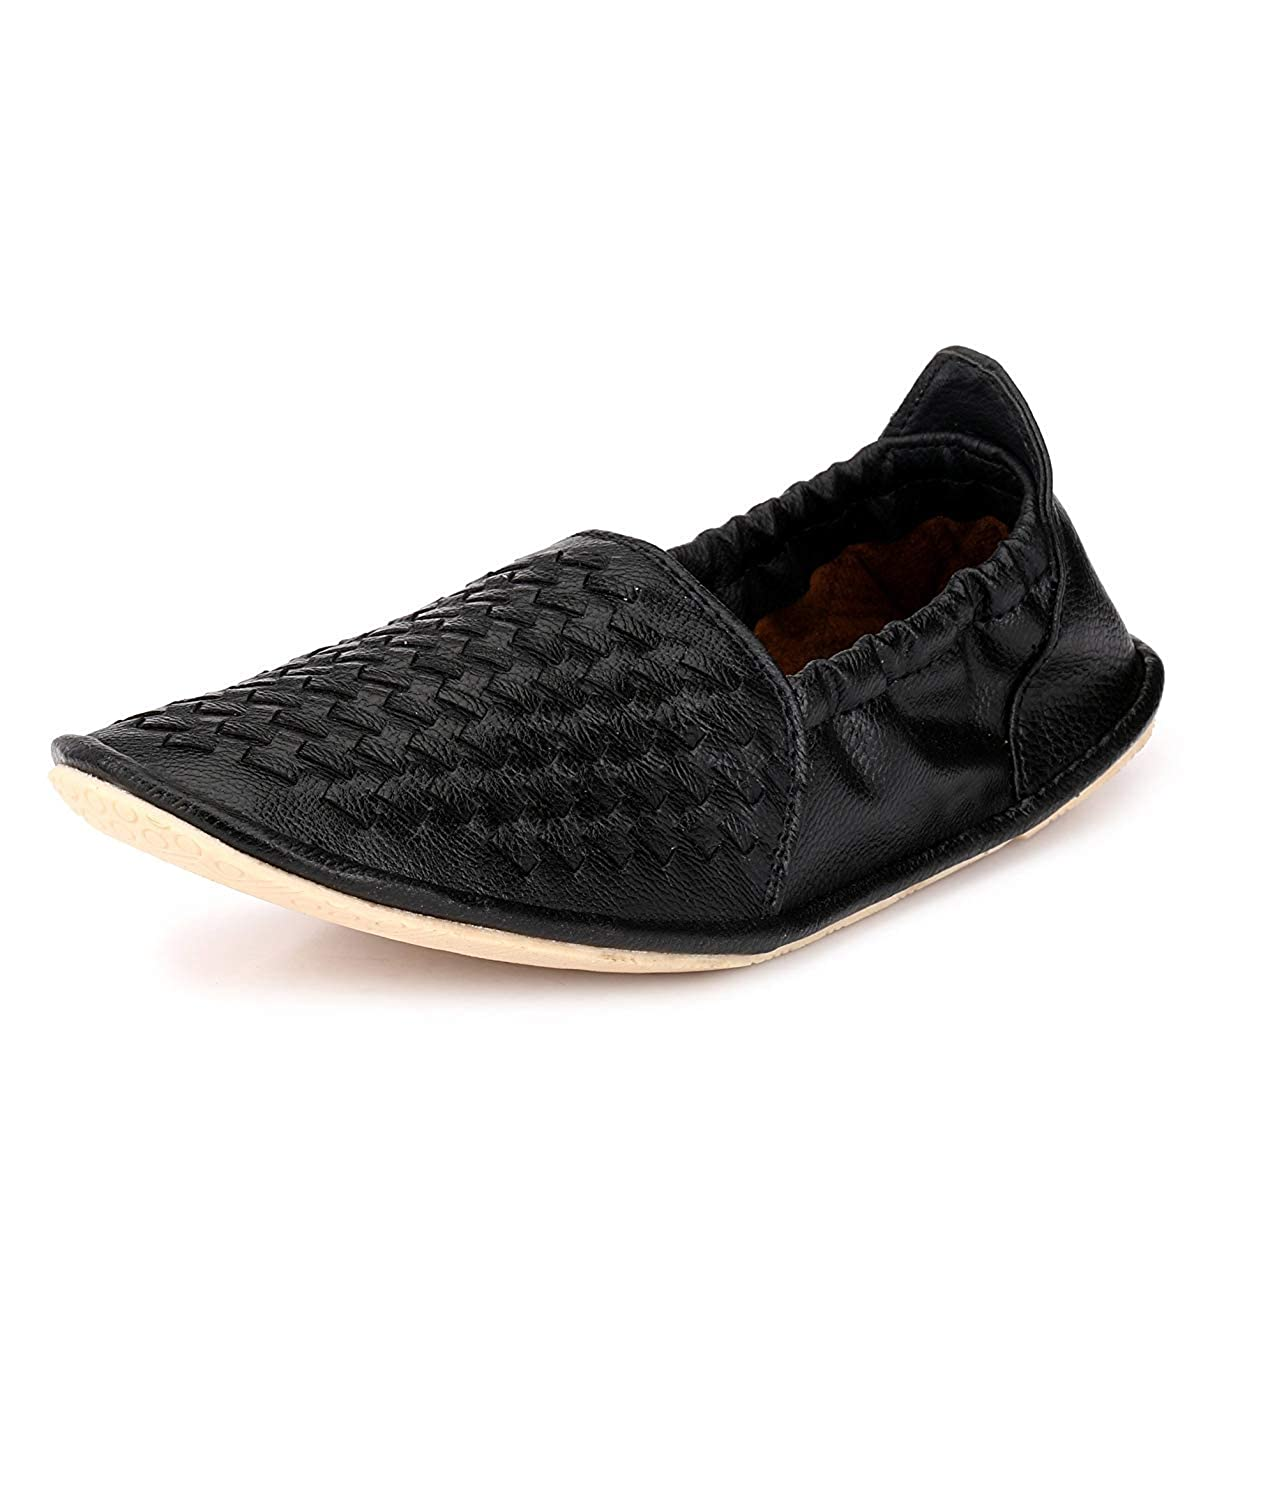 5f77df170b0 Shoe Fab Men s Synthetic Casual Loafers Ultra Flexible Loafers for Men  Formal Leather Loafers Driving Shoes Knockout Loafers for Men s Black  Buy  Online at ...